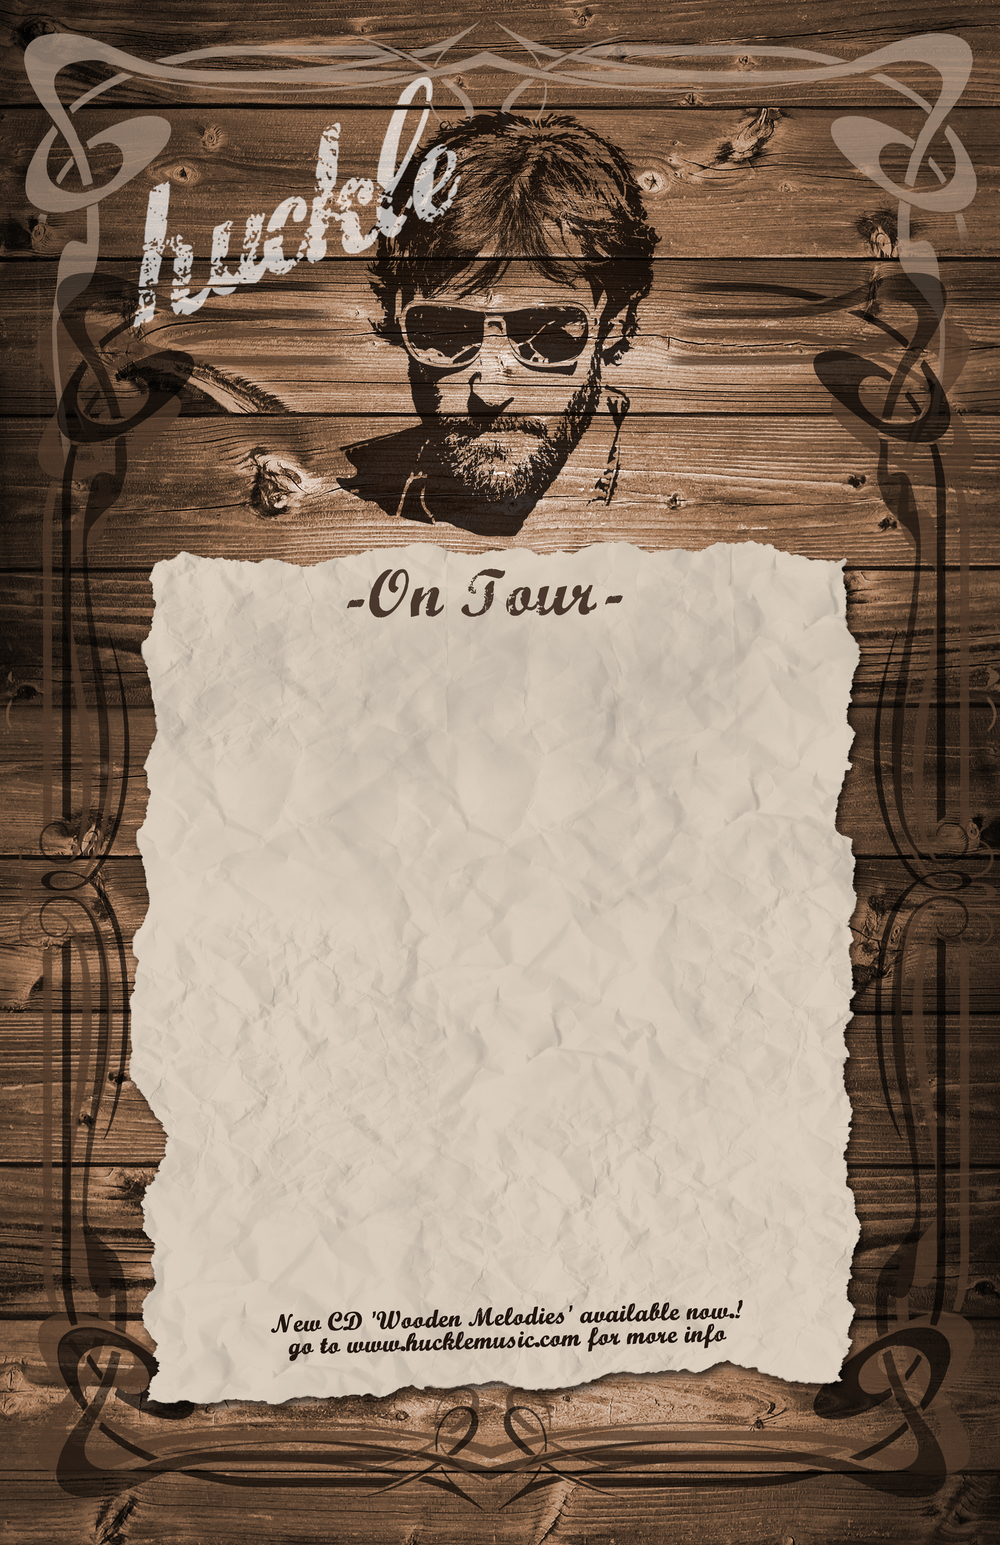 Huckle-Tour-Poster2.jpg